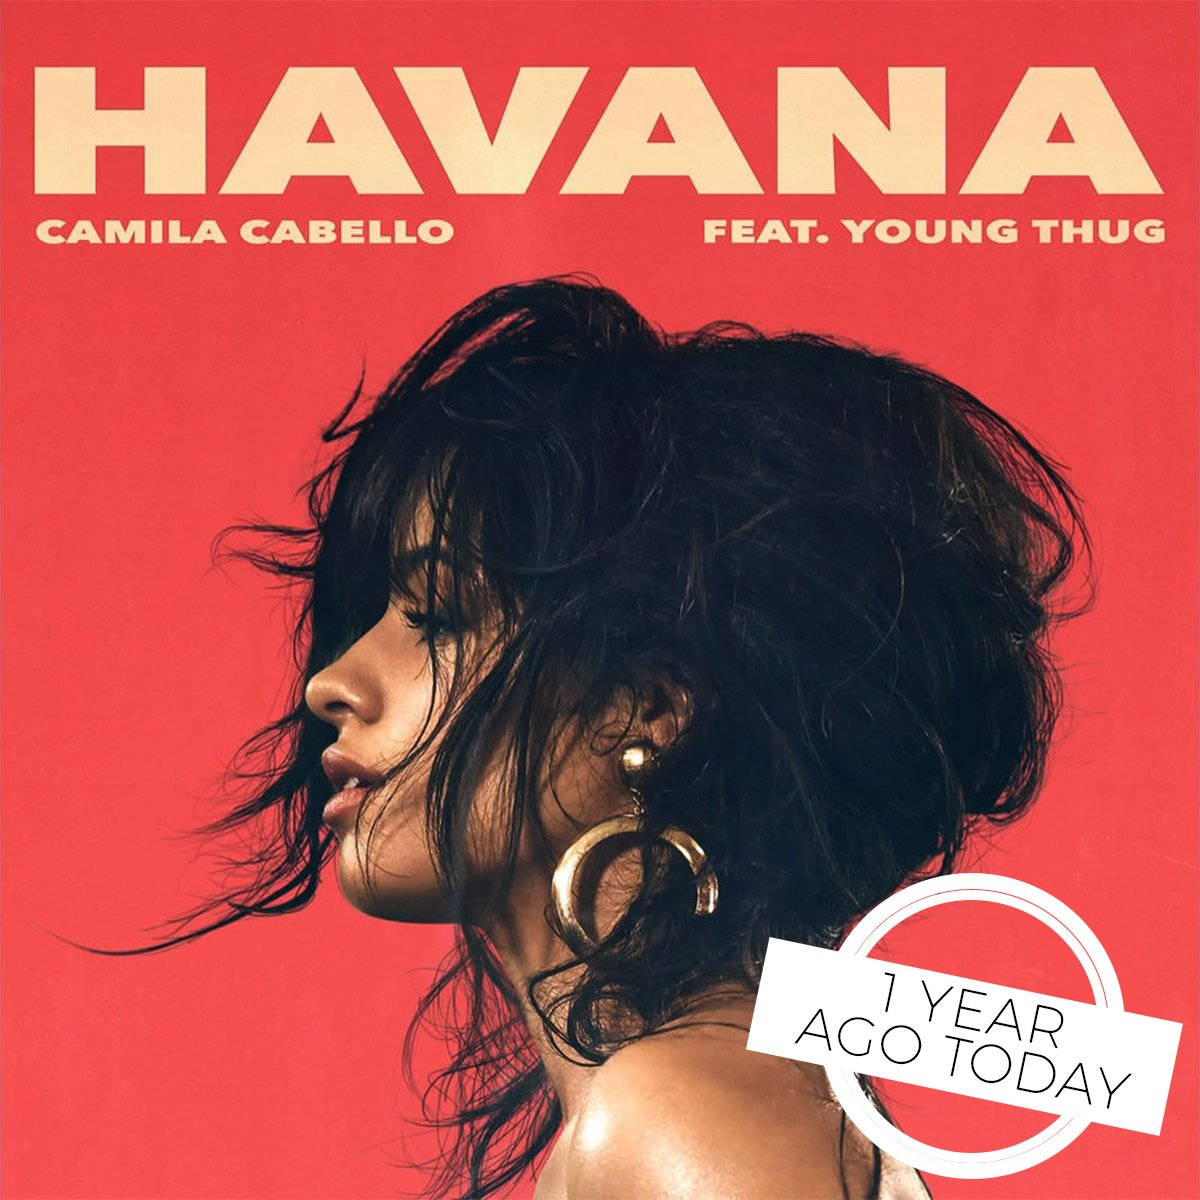 Havana, ooh na-na... is still in our head 1️⃣ year on and were not mad about it. Well never stop singing along to @Camila_Cabello! 💕🌴